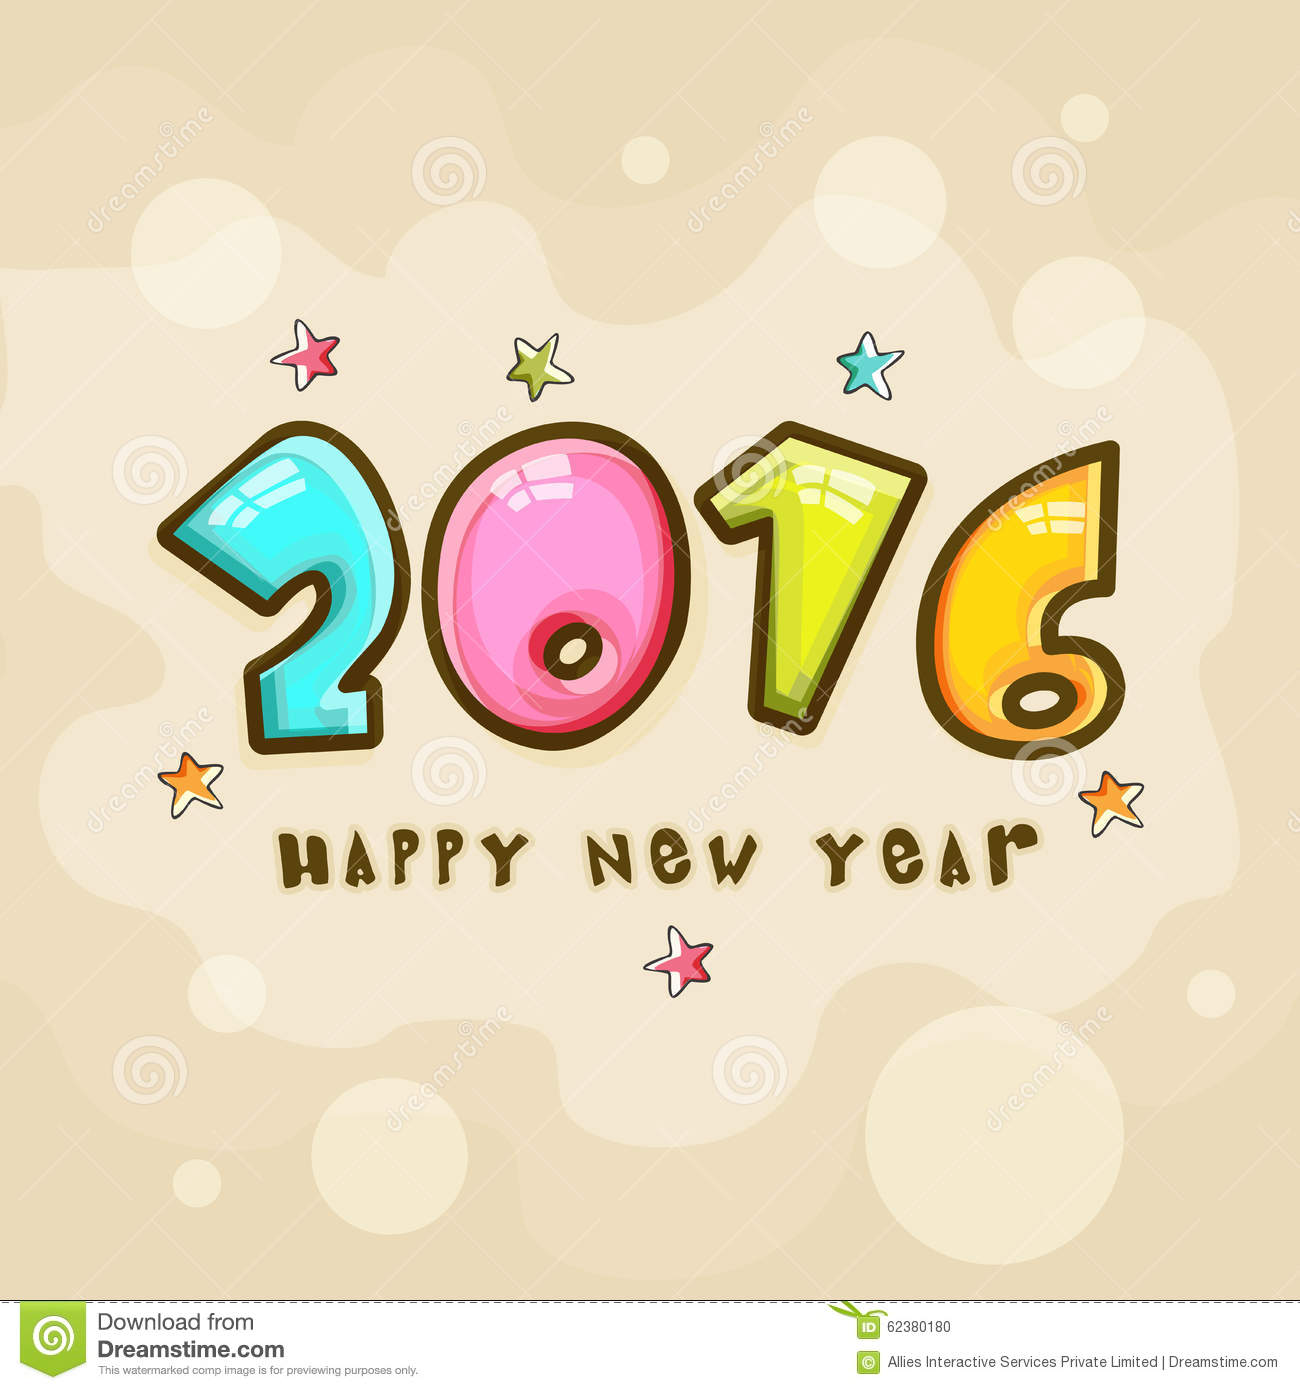 greeting card for new year 2016 celebration